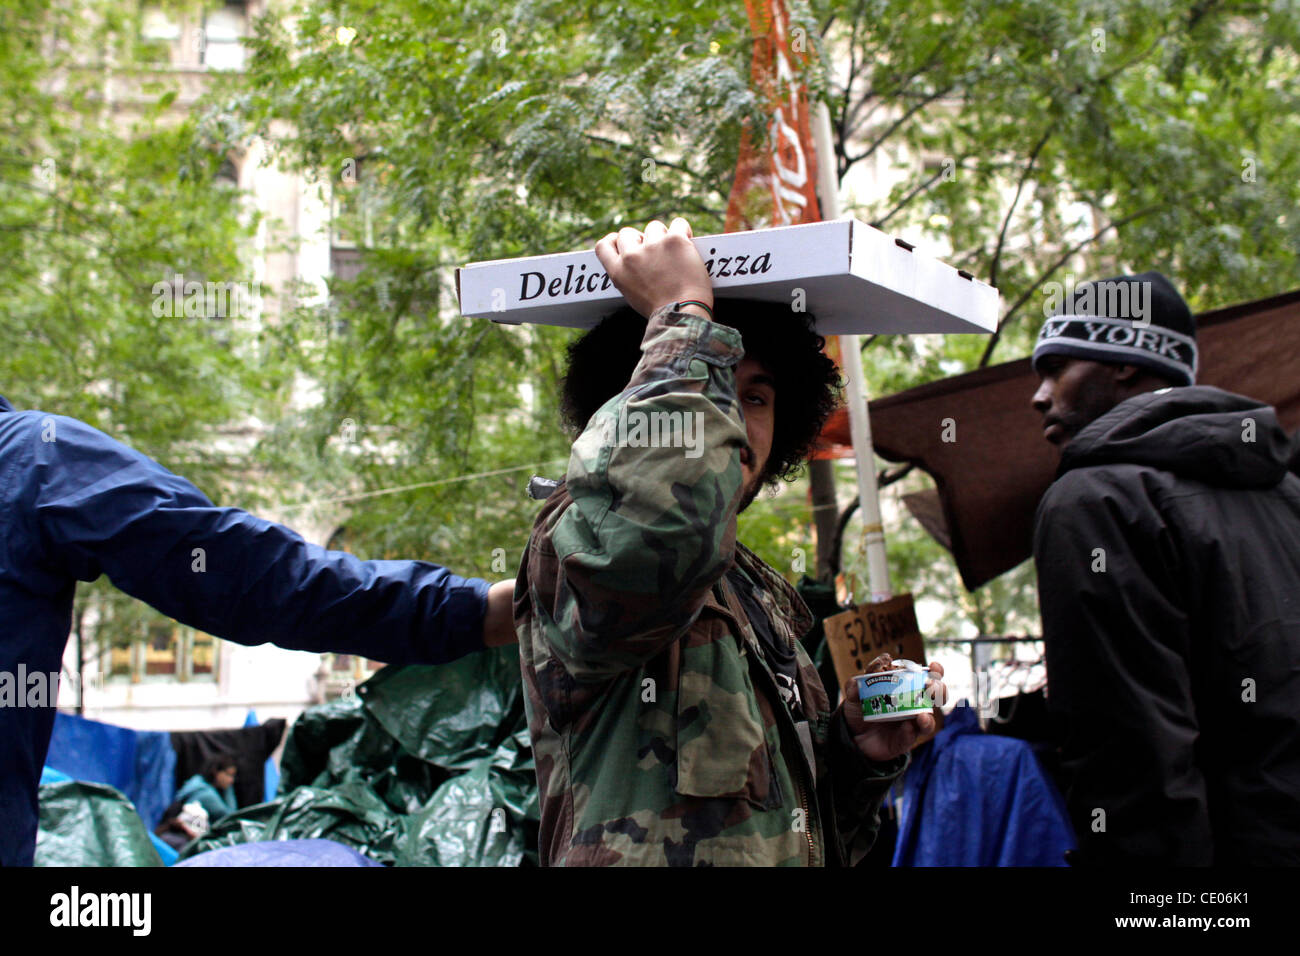 A protester with pizza at Occupy Wall Street in Zuccotti Park. Stock Photo